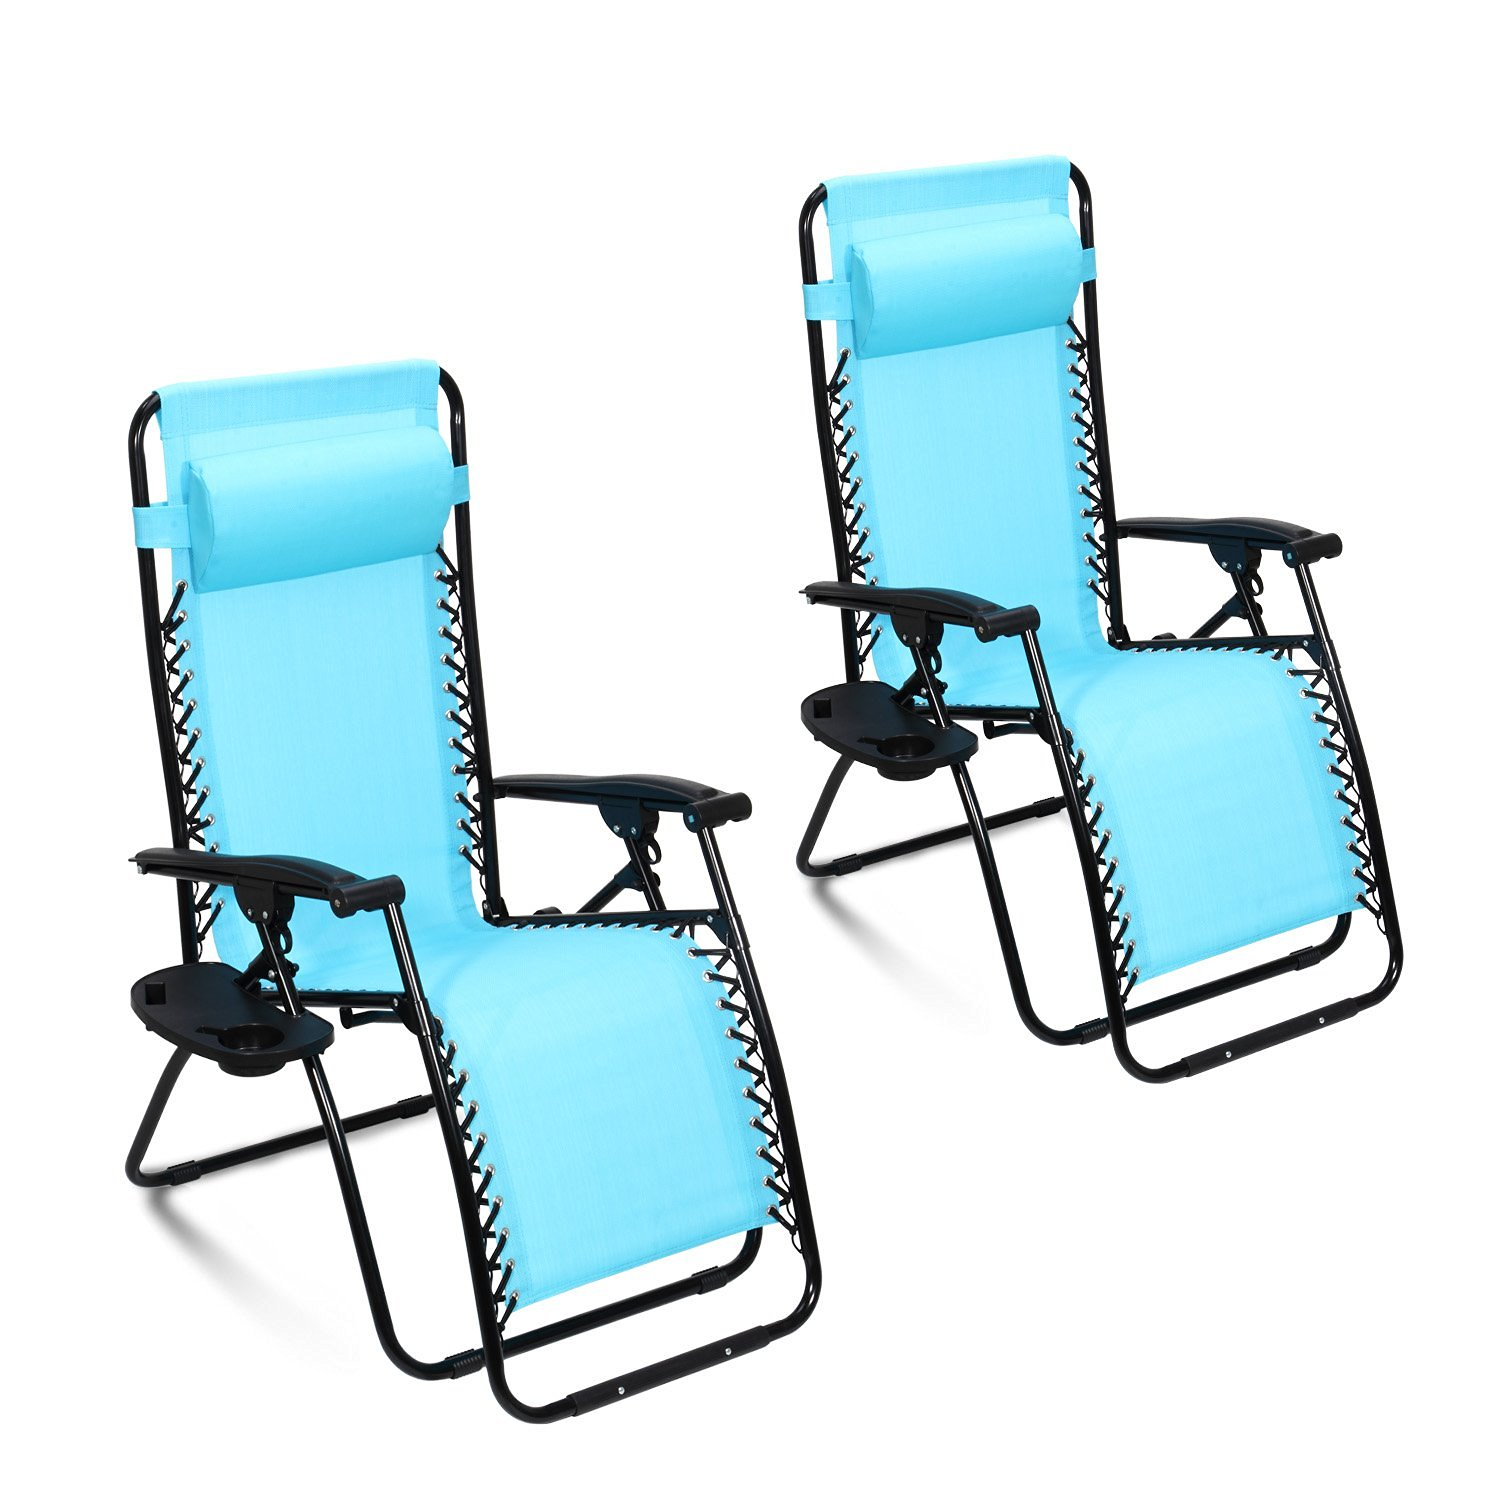 Top 10 Best Zero Gravity Chair Reviews Find Yours [2017]